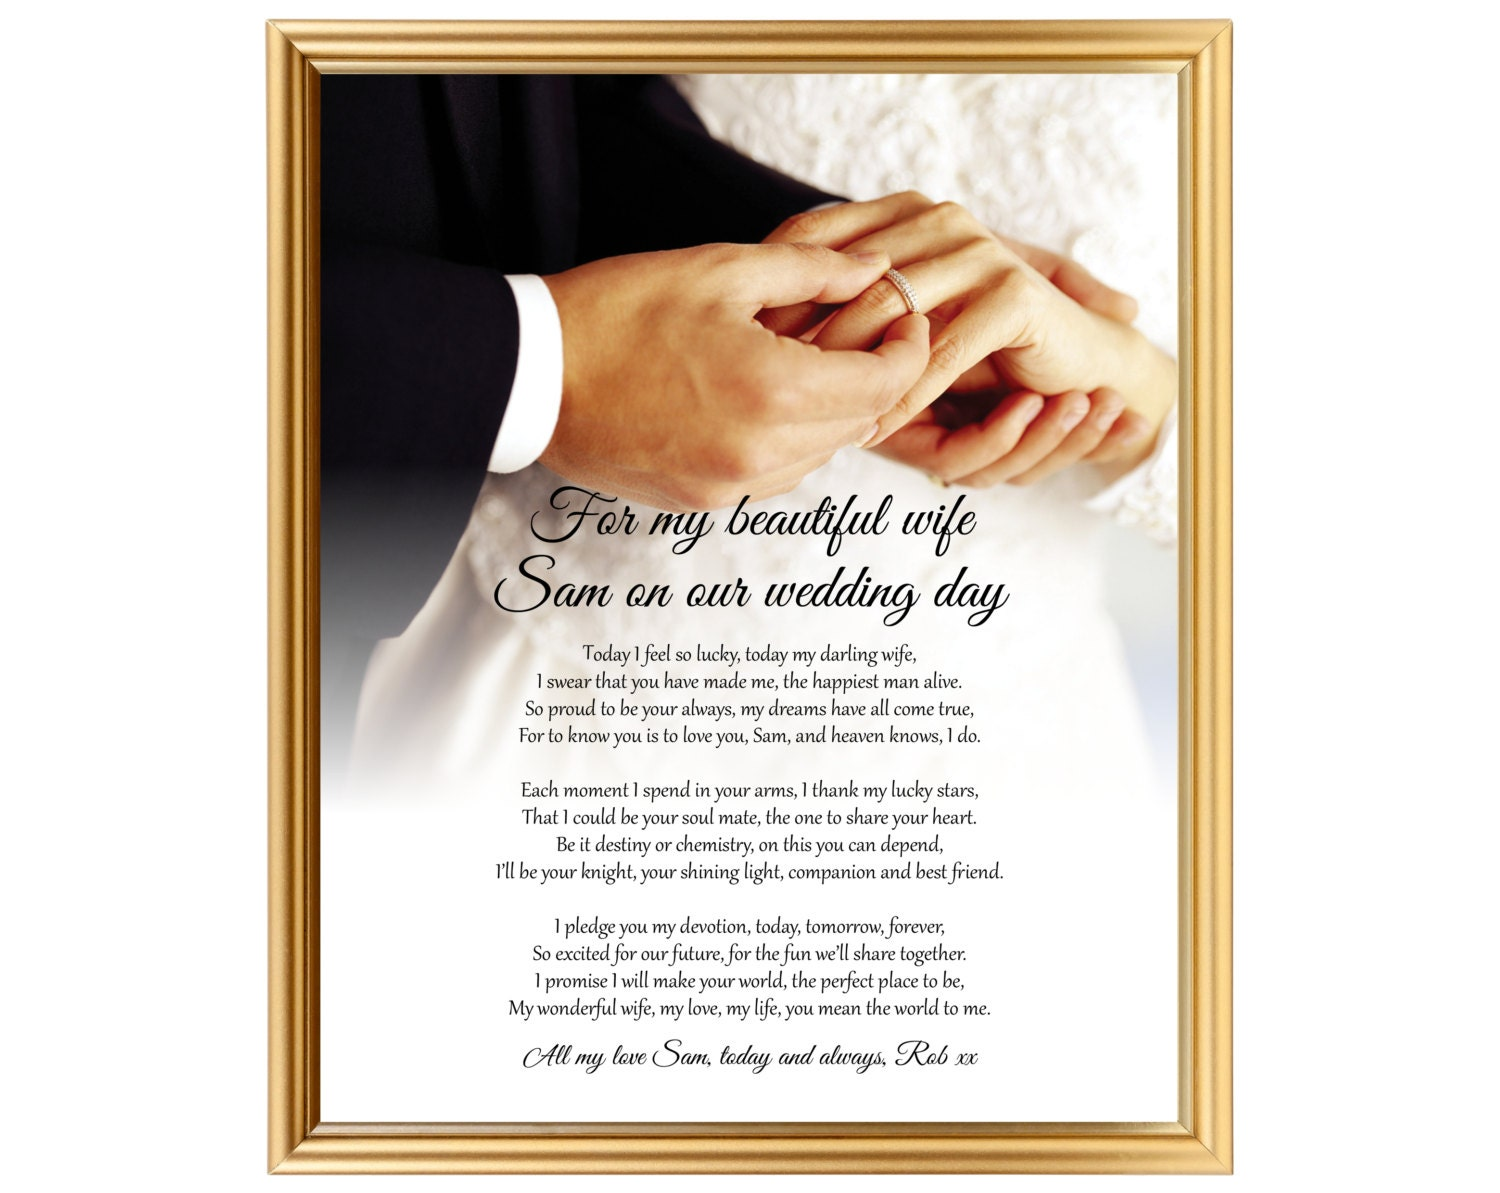 Wedding Day Gift For Wife: Poem Gift Of Love For Wife For My Bride On Our Wedding Day